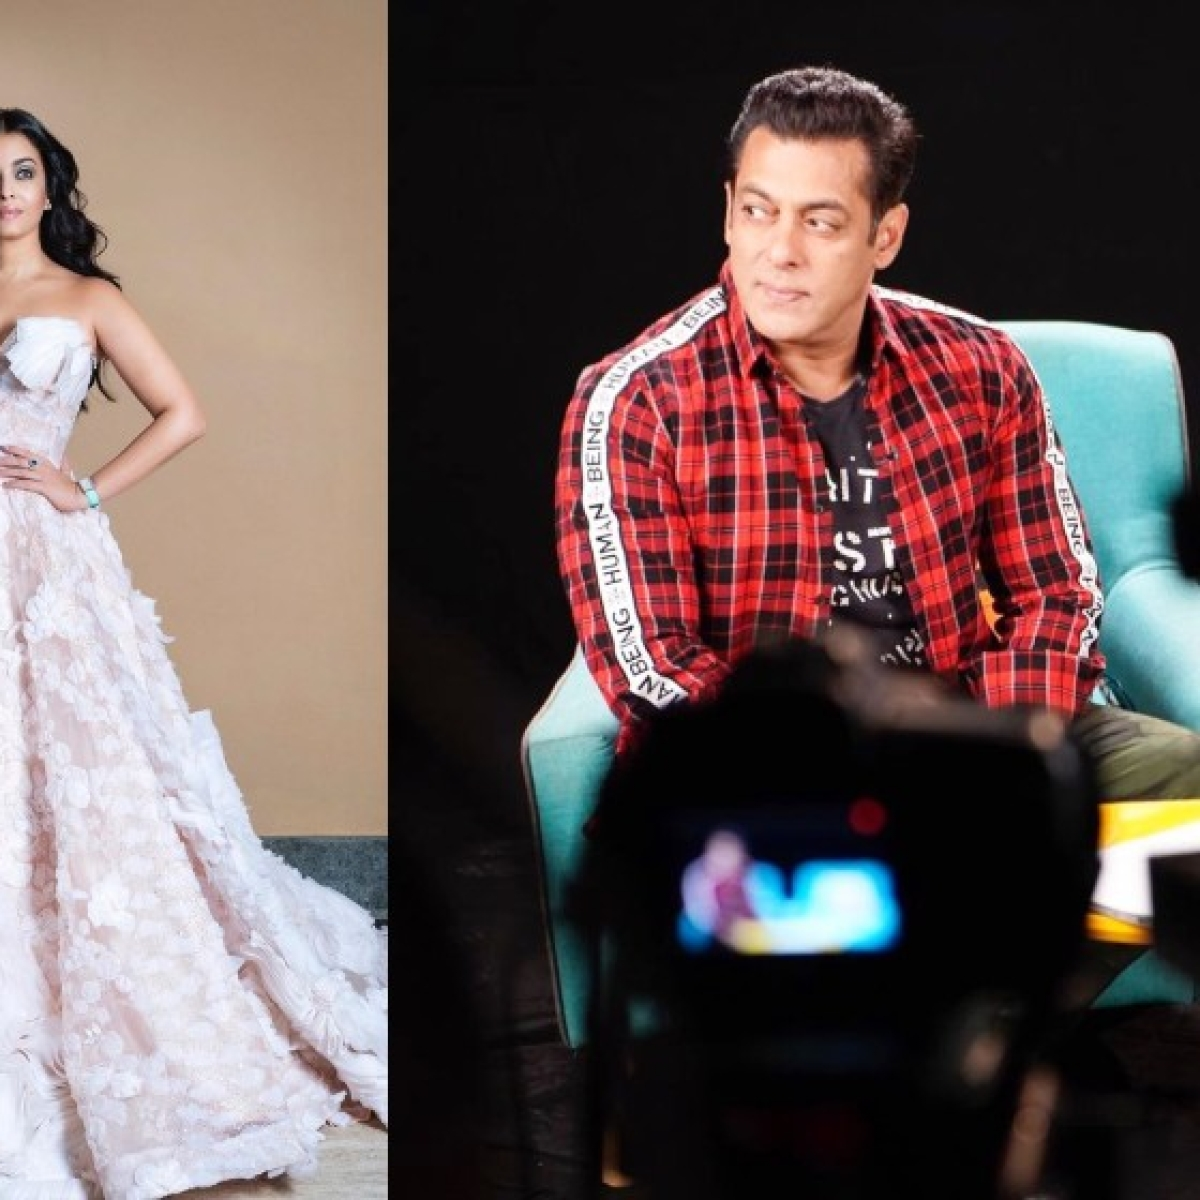 Bigg Boss 13: Salman Khan stunned after 'Aishwarya Rai Bachchan' enters his show